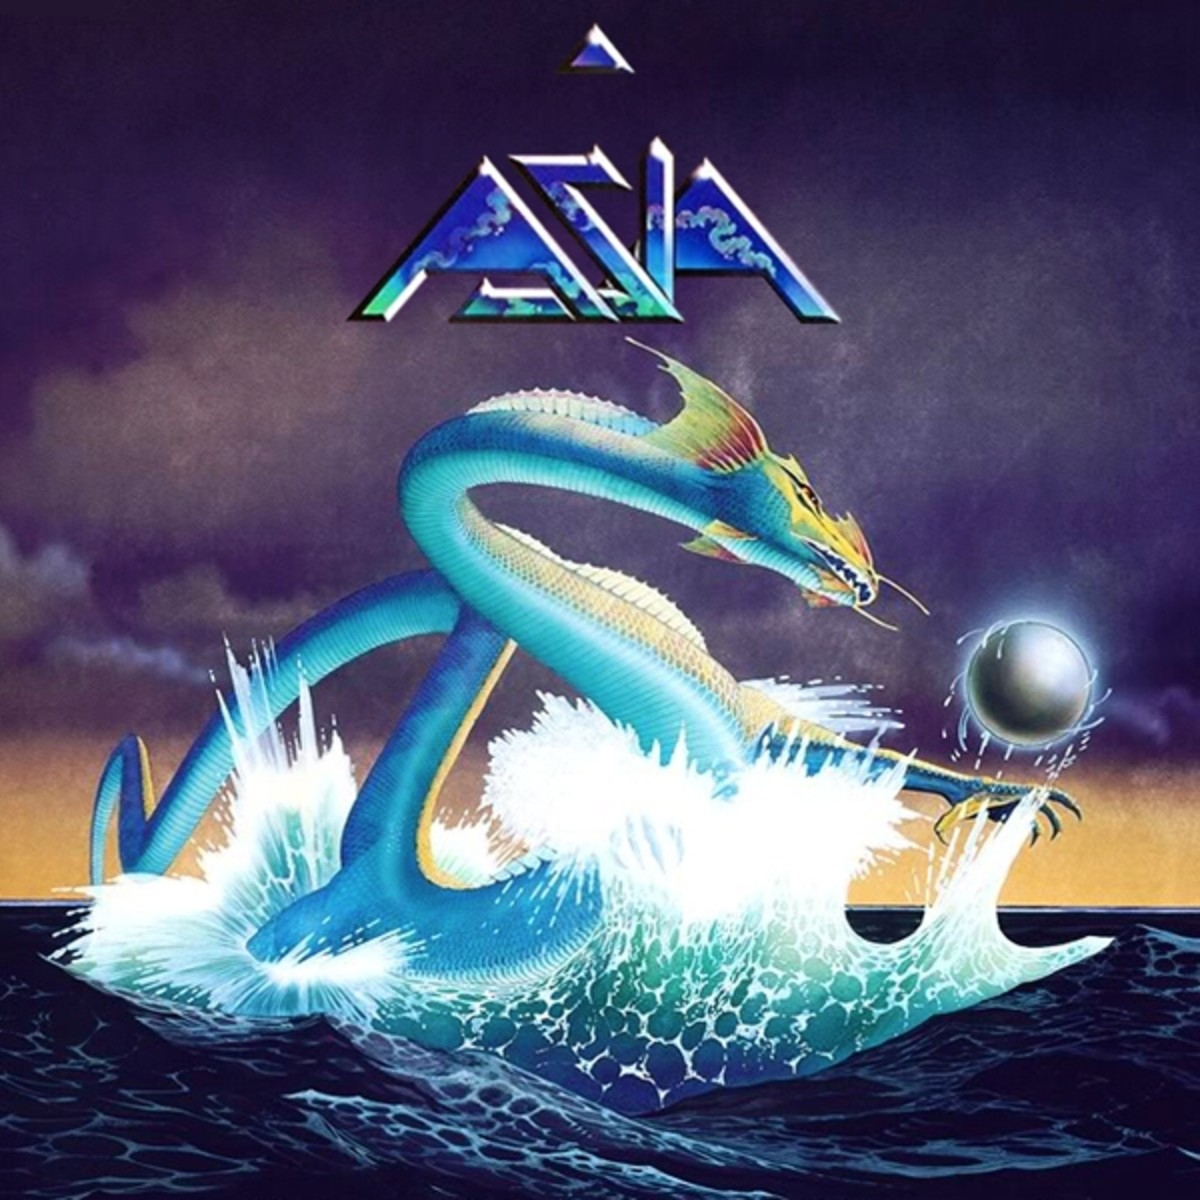 Retro Rock Review: Asia (1982)